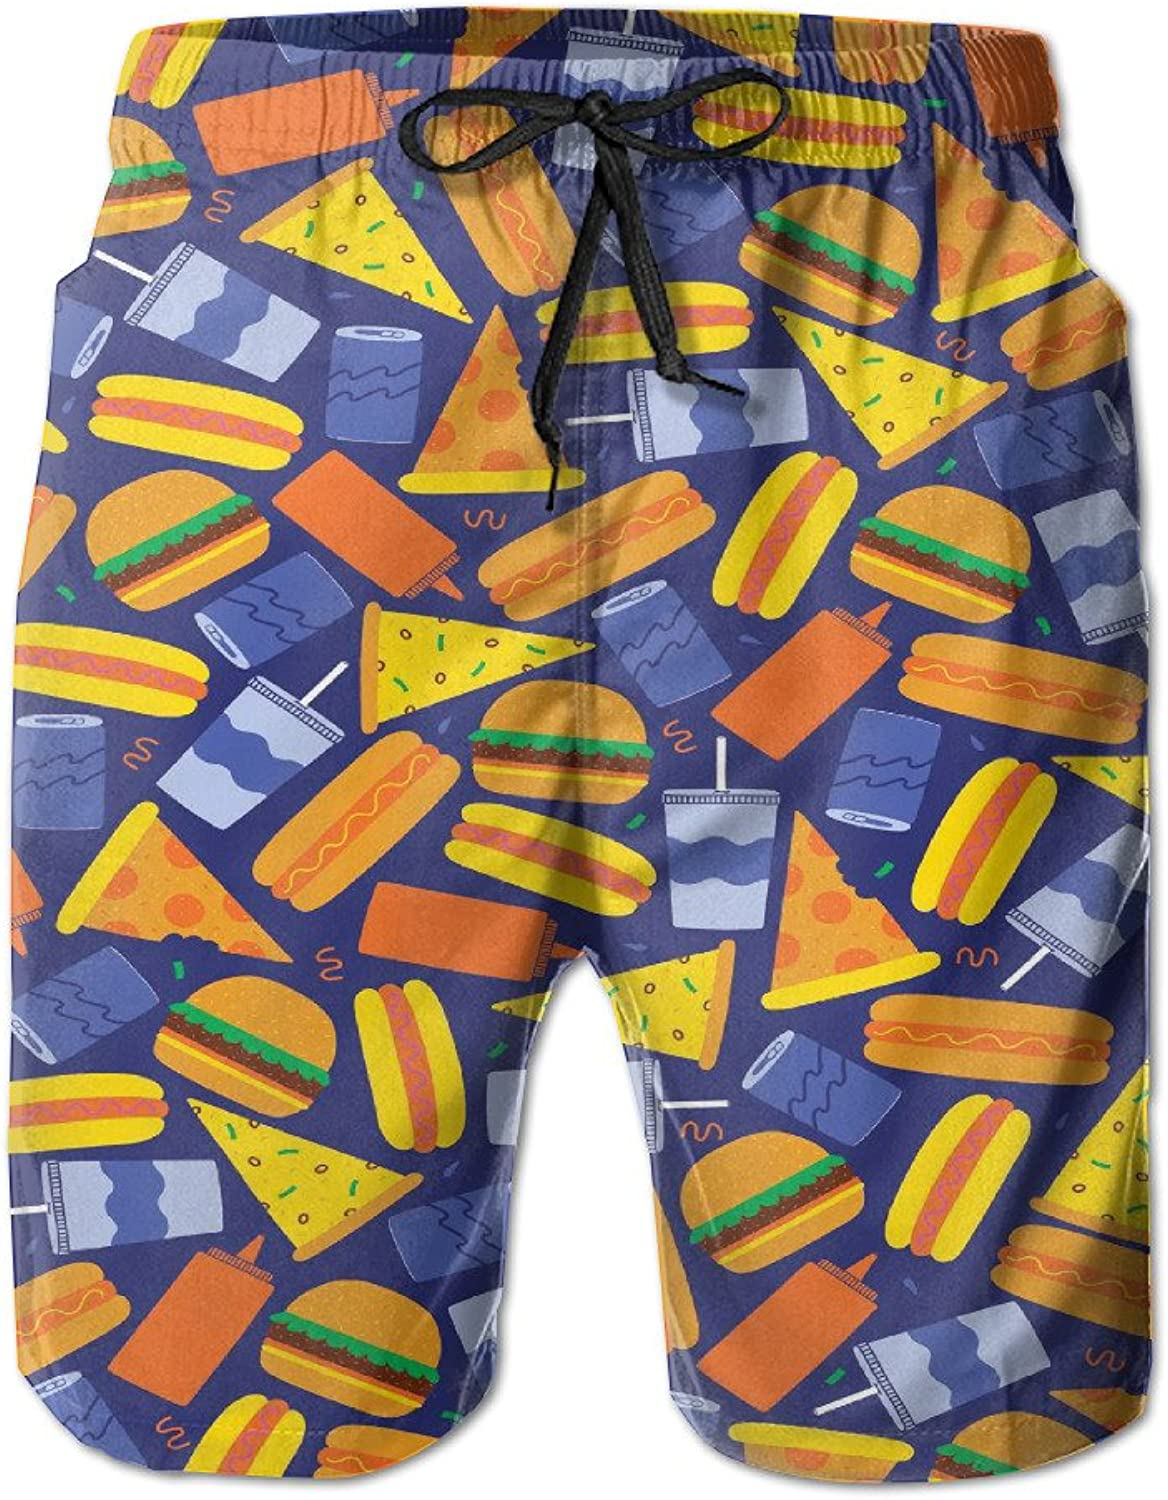 - JH JH JH SPEED Mens Surf Beach Shorts Swim-Trunks Quick Dry Burger Pizza Board Shorts with Pocket SizeNme 3c7d04